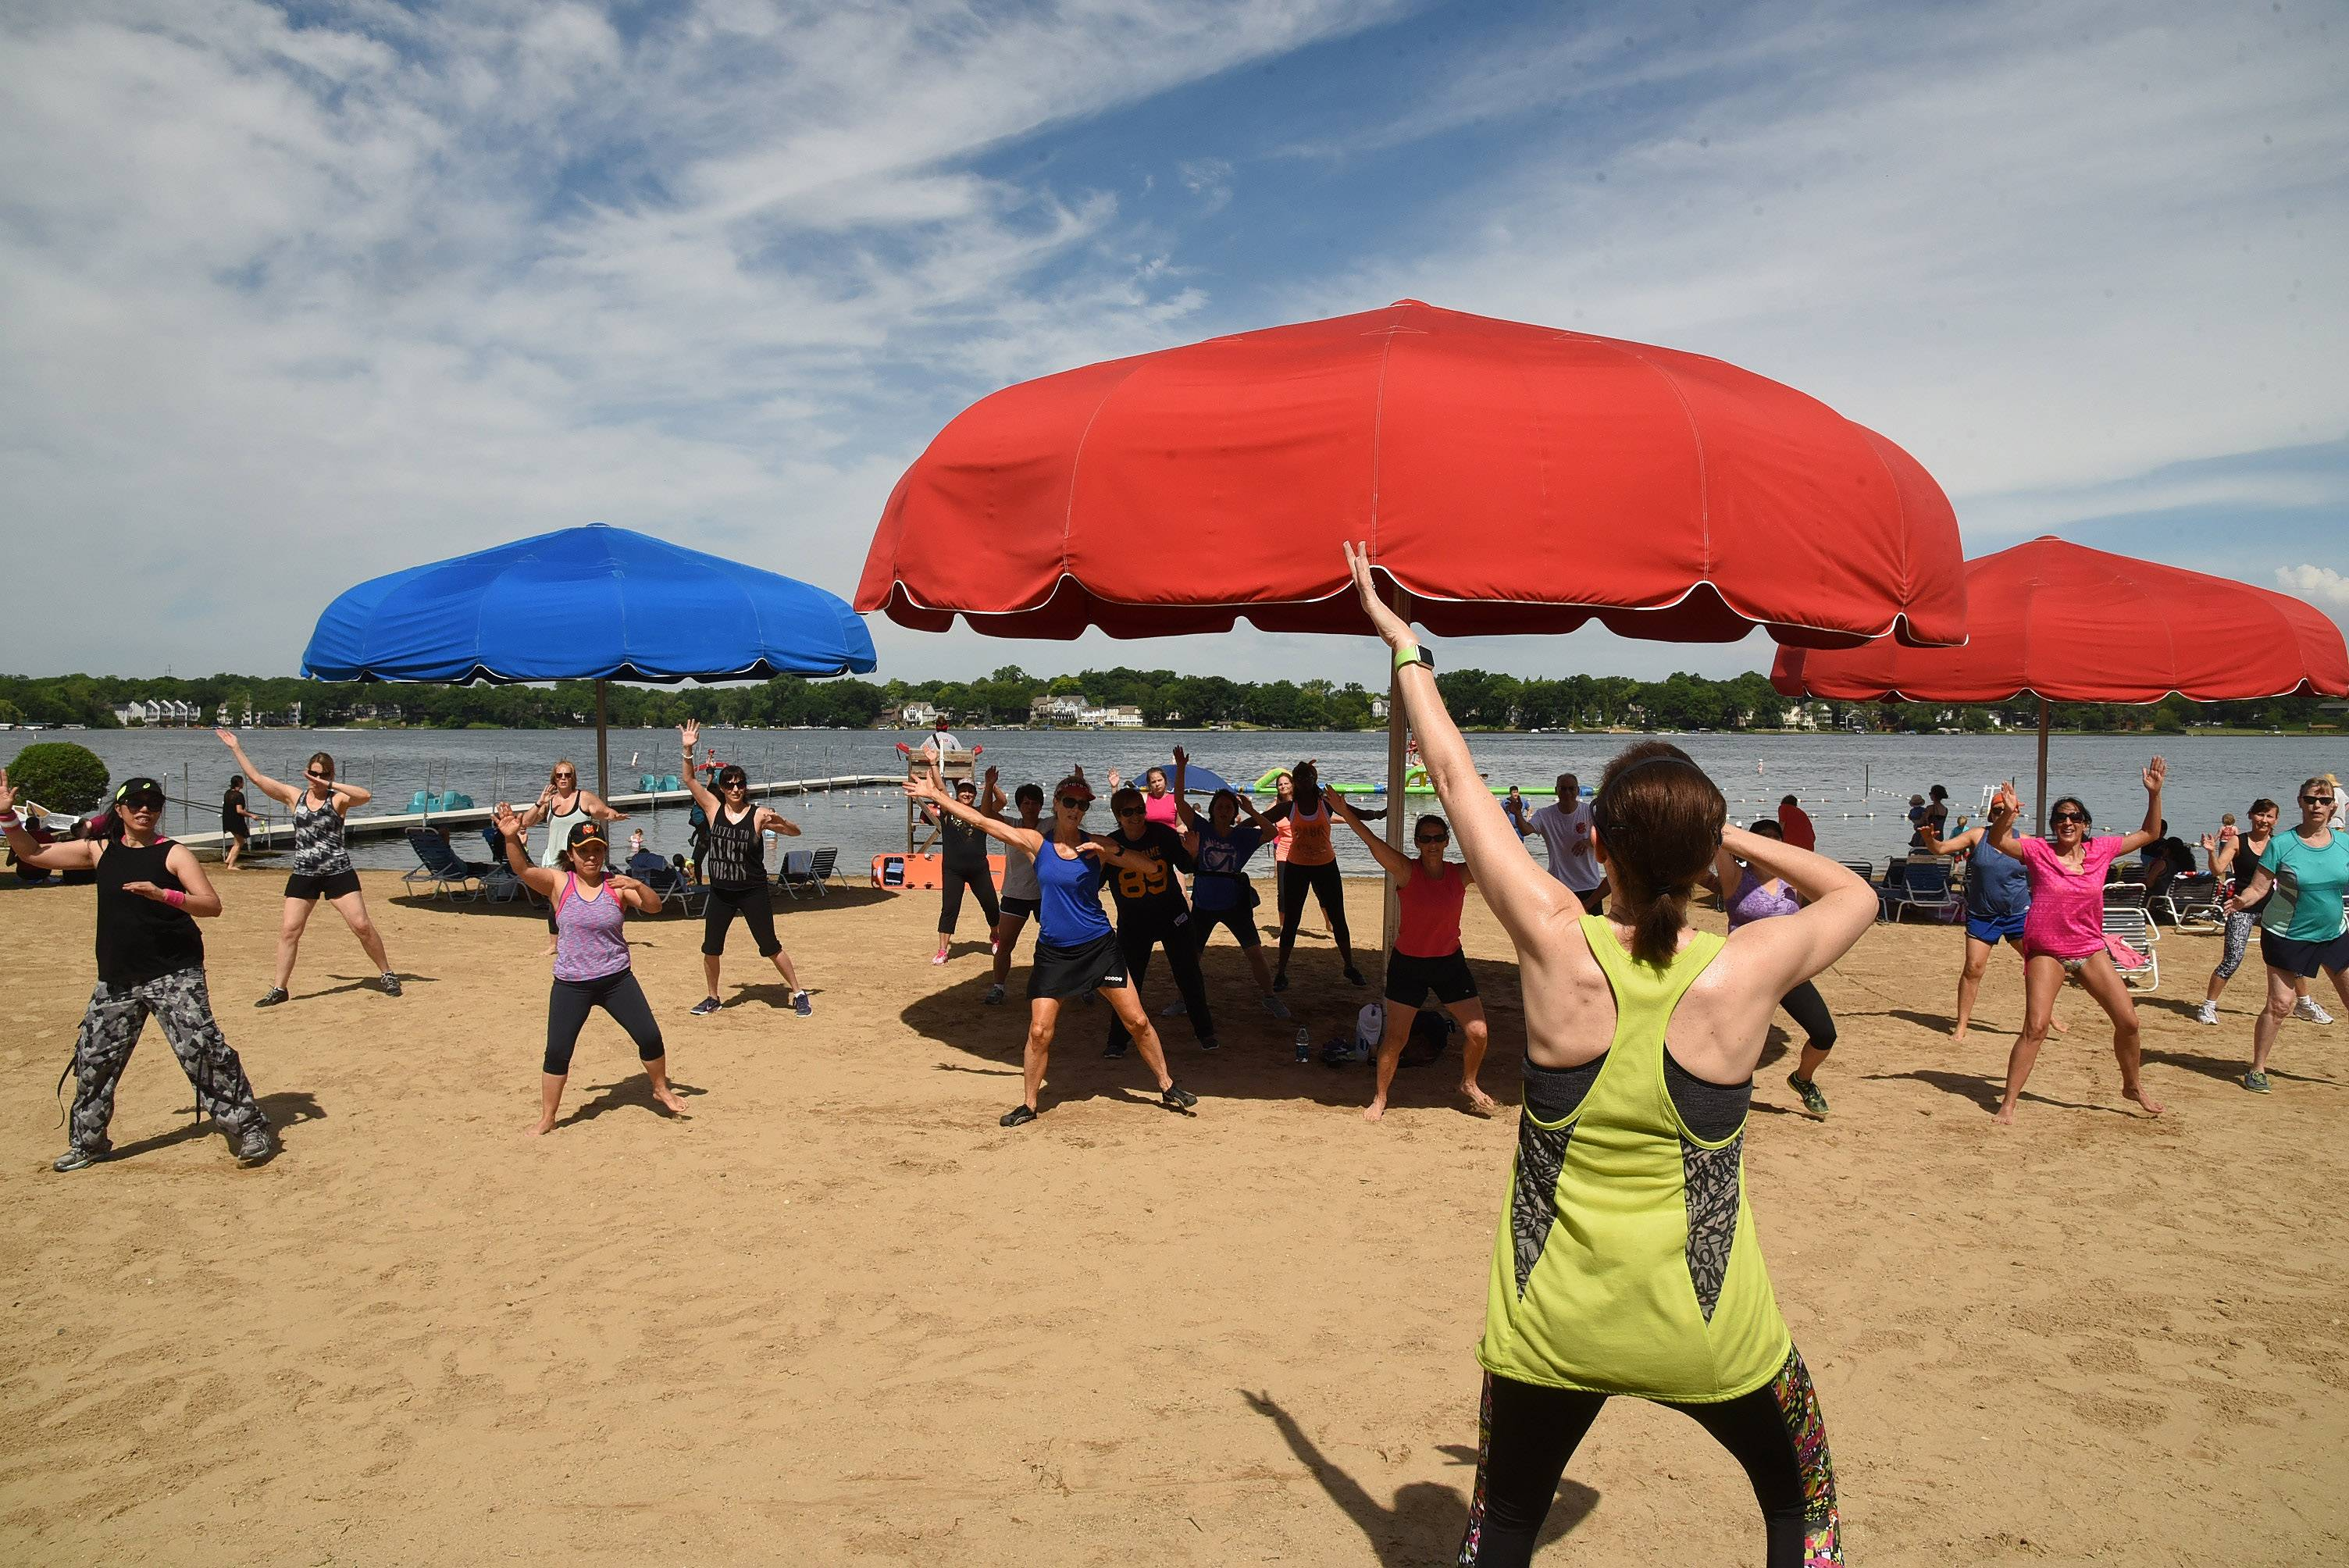 A Zumba instructor leads a class on the beach during Mundelein Park & Recreation District's Community Picnic at Diamond Lake Beach. The event, renamed the Beach Bash, will be held from 10 a.m. to 8 p.m. Saturday, June, 16 at Diamond Lake Beach.